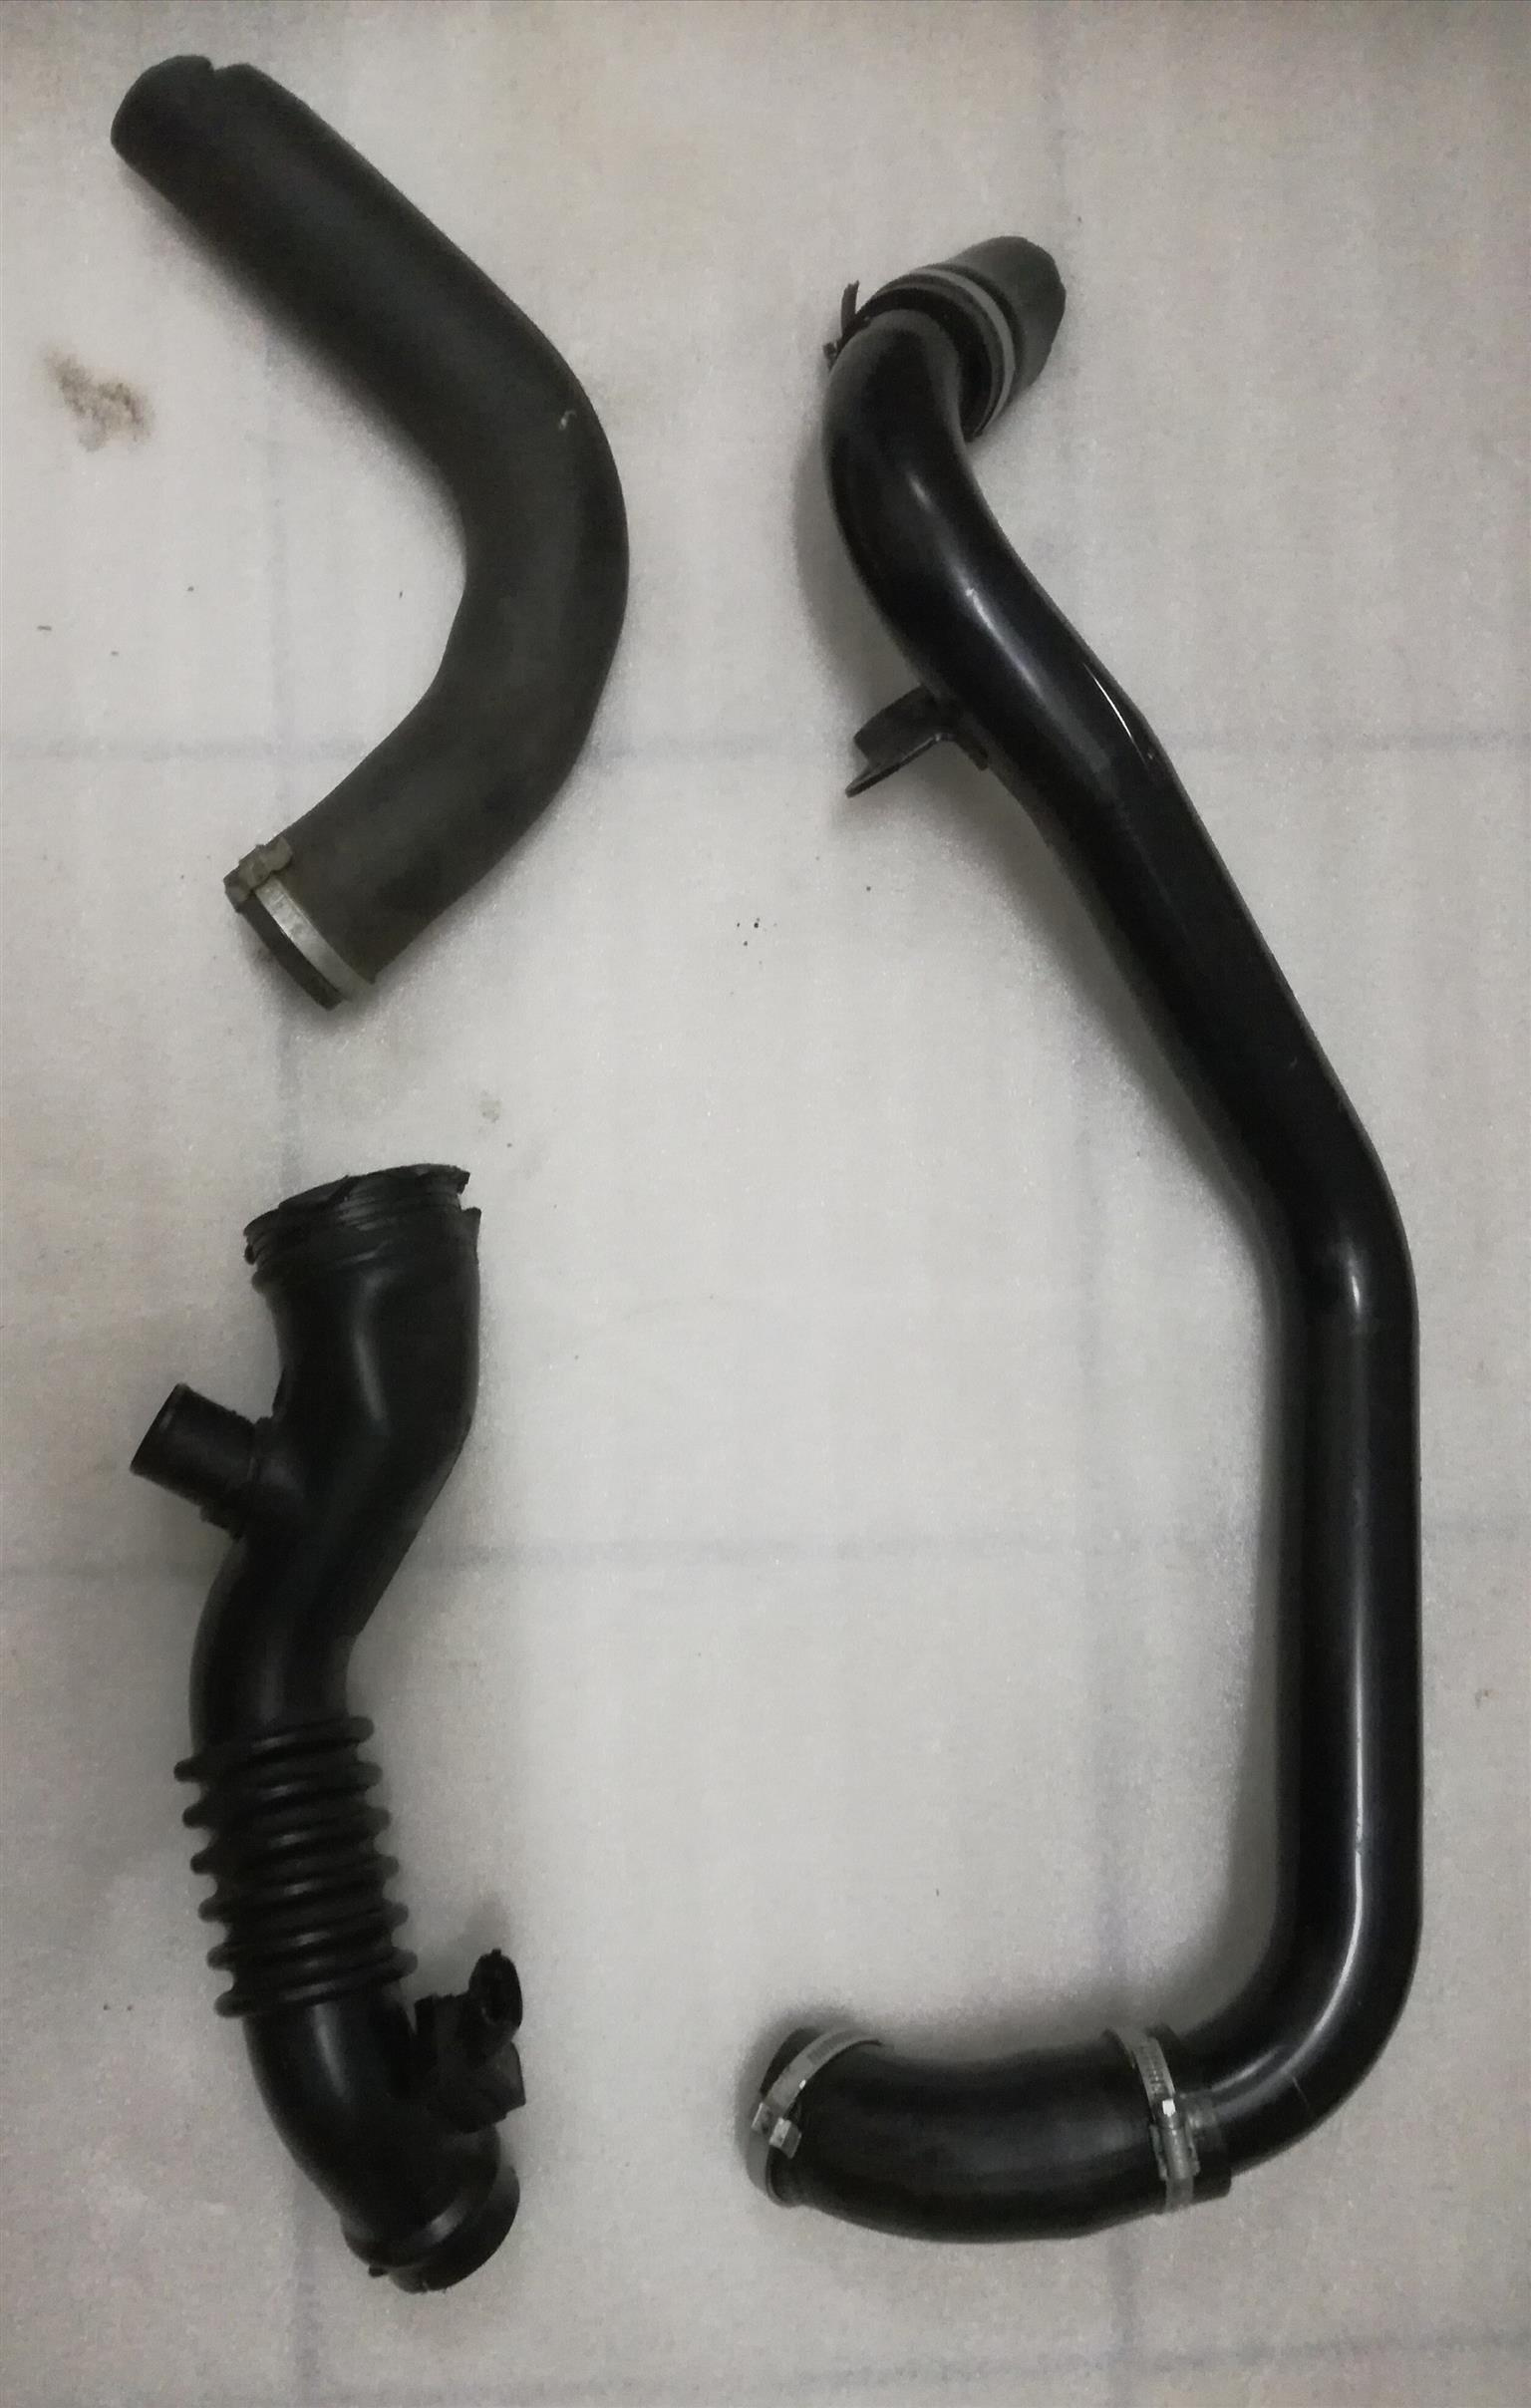 Ford Focus ST 2009 Intercooler pipes and the pipe with sensor